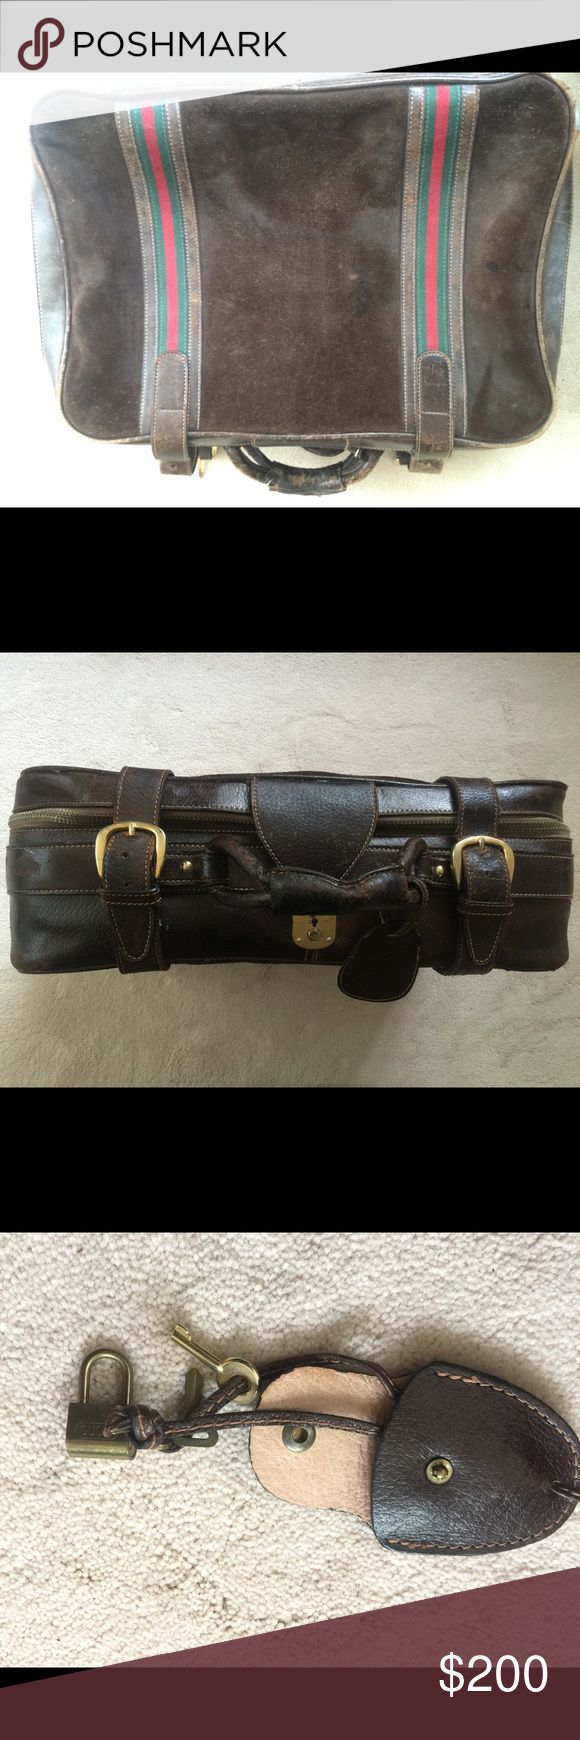 Gucci travel bag -- dark brown leather/suede Vintage travel case purchased by the seller back in 1980s from the Gucci store located in the Watergate retail area in DC. Has been around the world several times and consequently one strap had to be repaired. All original -- includes tiny Gucci padlock and key. Gucci Other